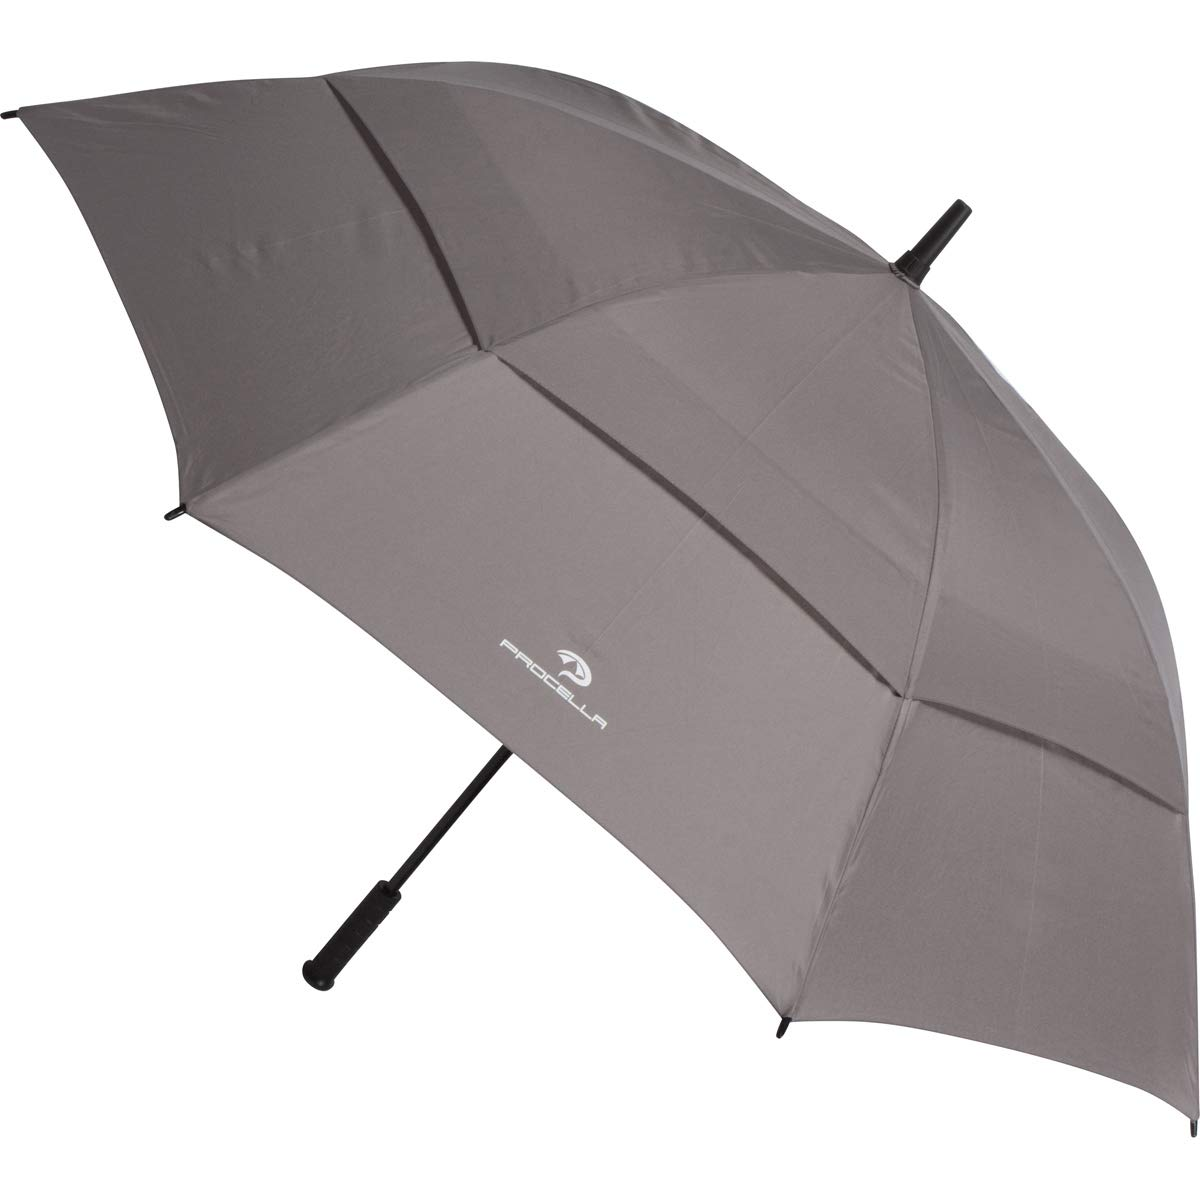 Procellaゴルフ傘62インチLarge Oversize防風防水自動開きRain & Wind Resistant Vented Doubleキャノピー頑丈なポータブルBest golf-sized Stick Umbrellas for Men and Women  グレー B01NBK1IE3